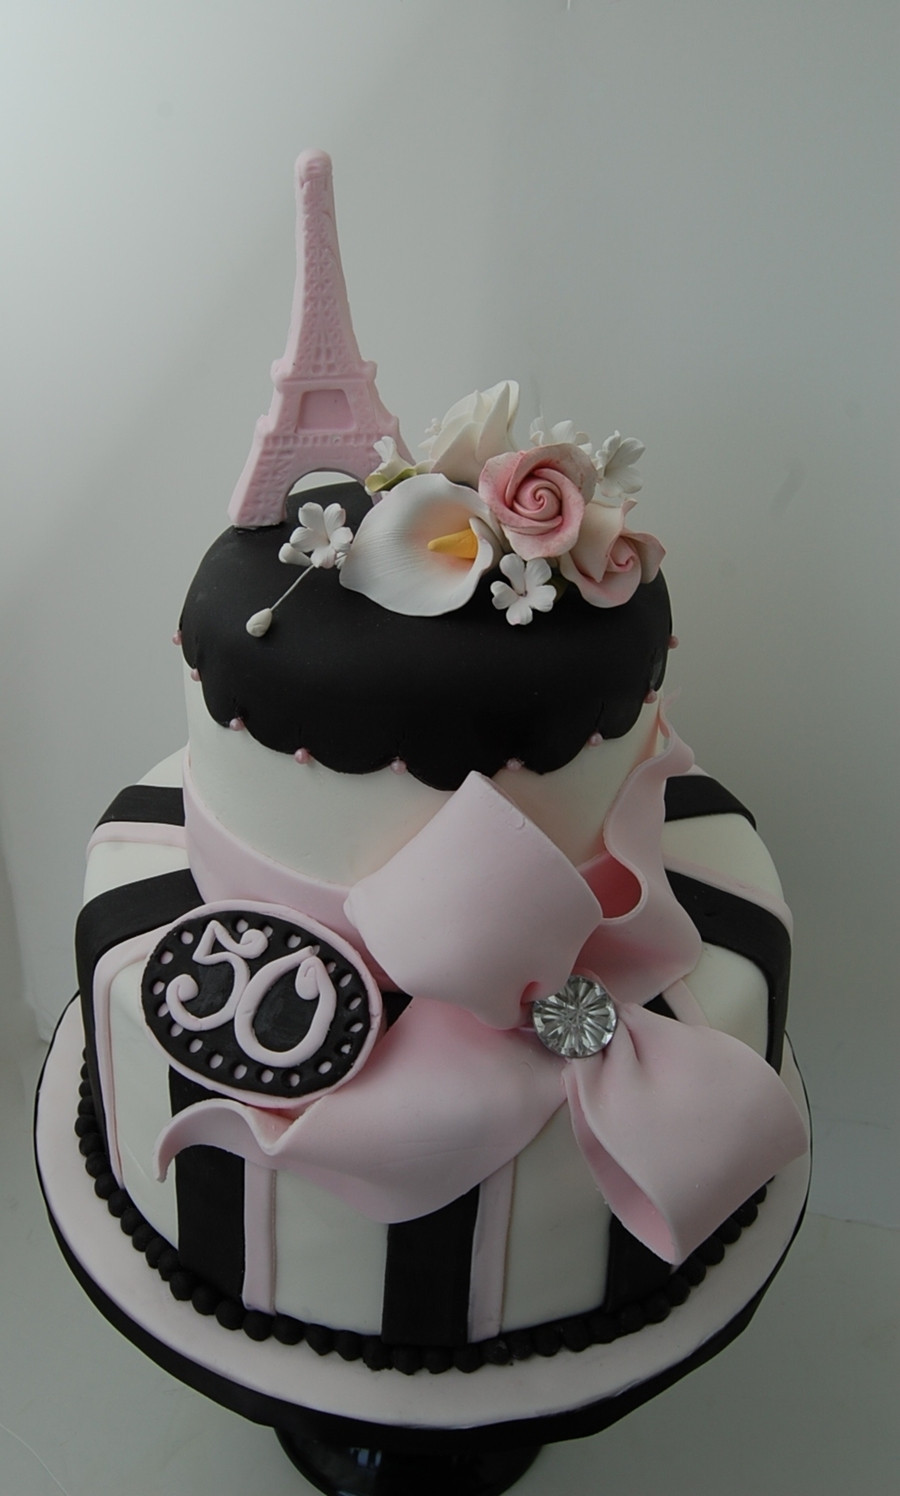 Best ideas about Paris Birthday Cake . Save or Pin Paris Themed 50Th Birthday Cake CakeCentral Now.